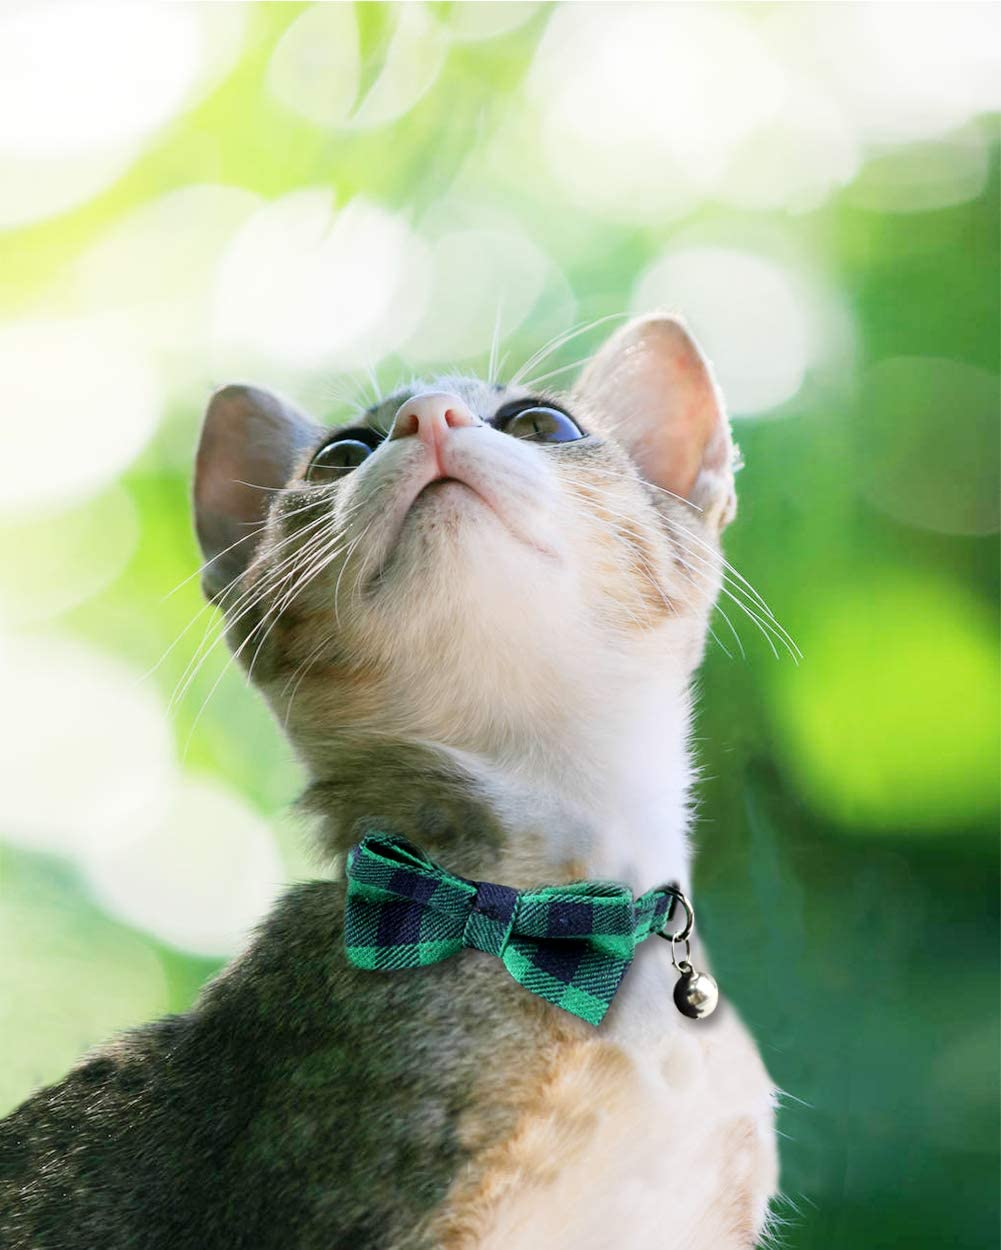 1 Pack Kitty Safety Collars Joytale Quick Release Cat Collar with Bell and Bow Tie Cute Plaid Patterns Black